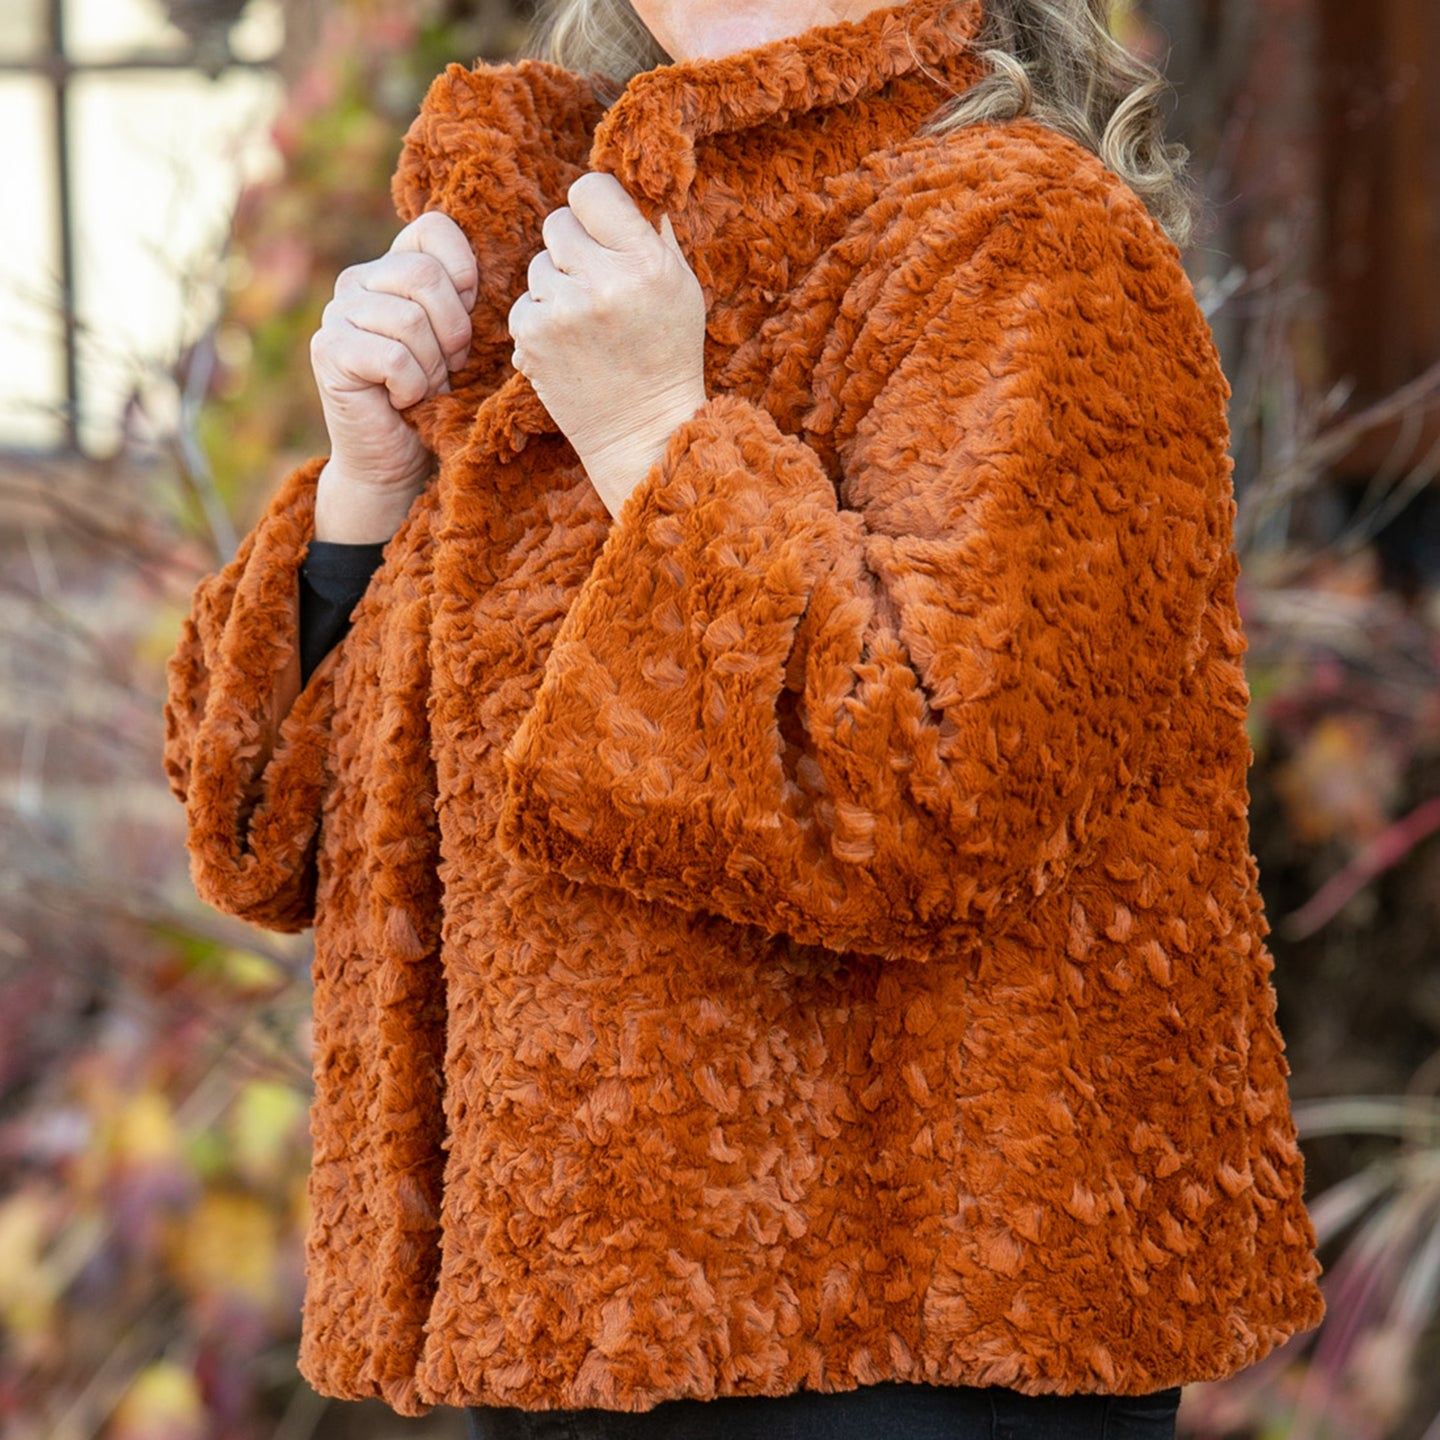 Burnt orange, teddy bear coat